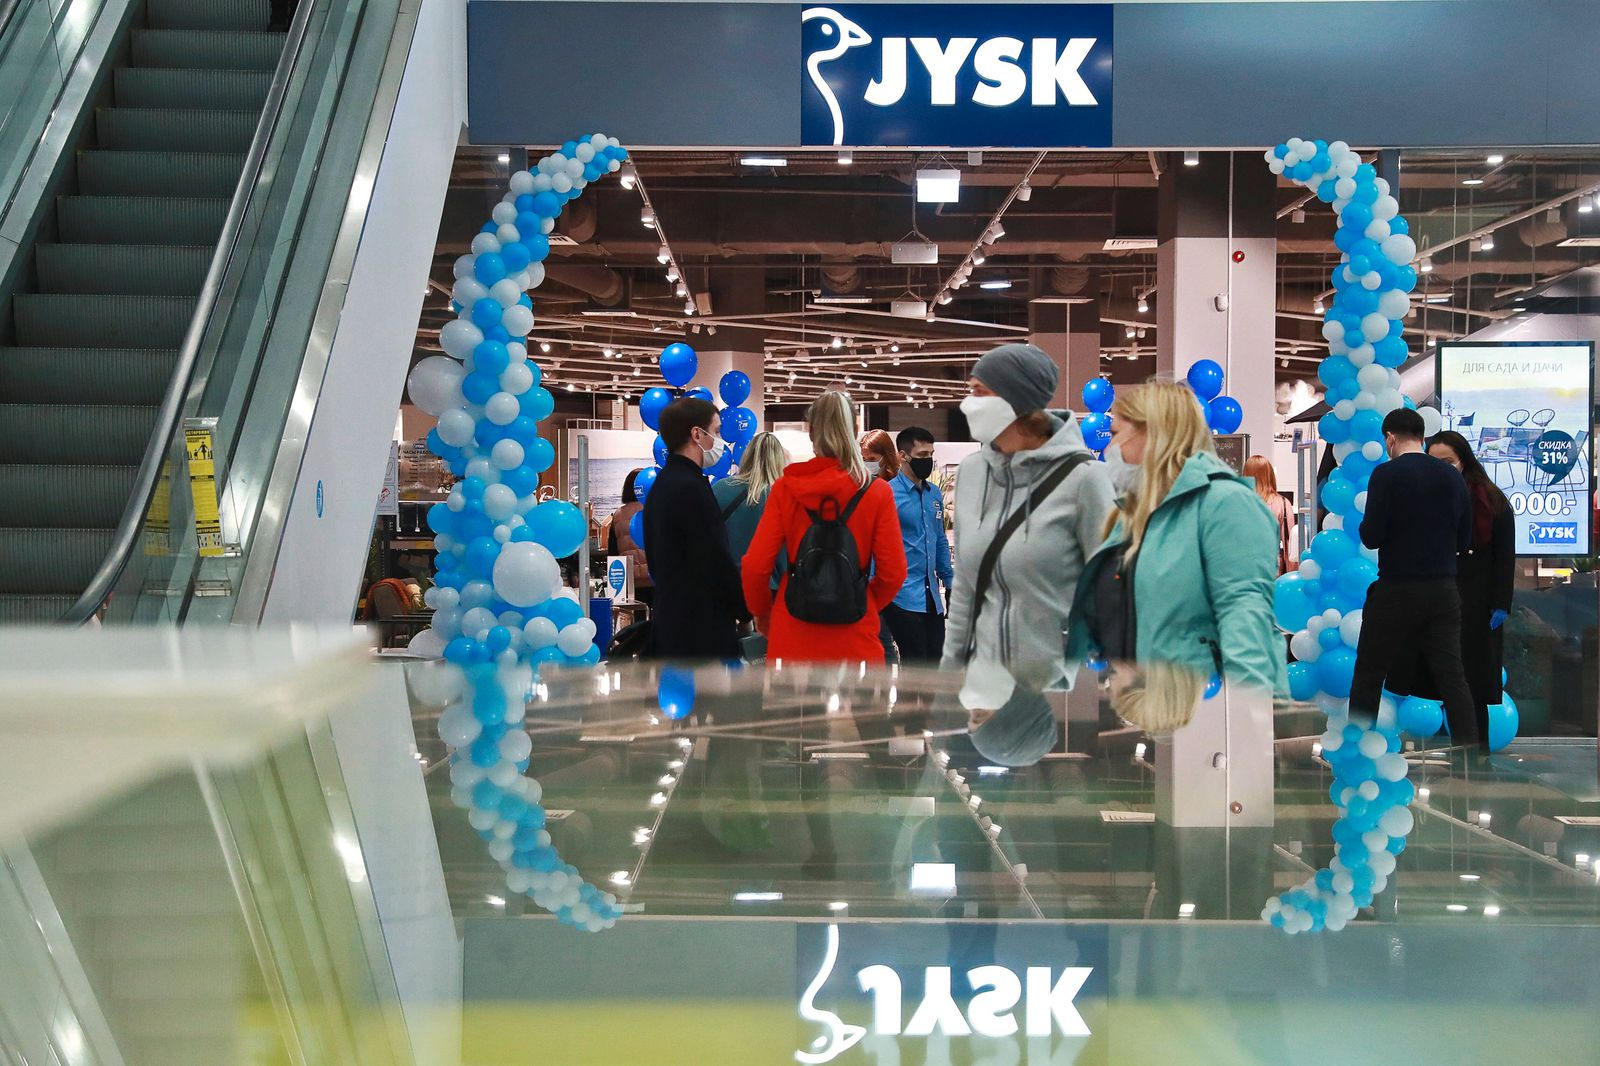 MOSCOW, RUSSIA - JUNE 3, 2020: Customers visit the first household goods store launched by the Danish retail chain Jysk